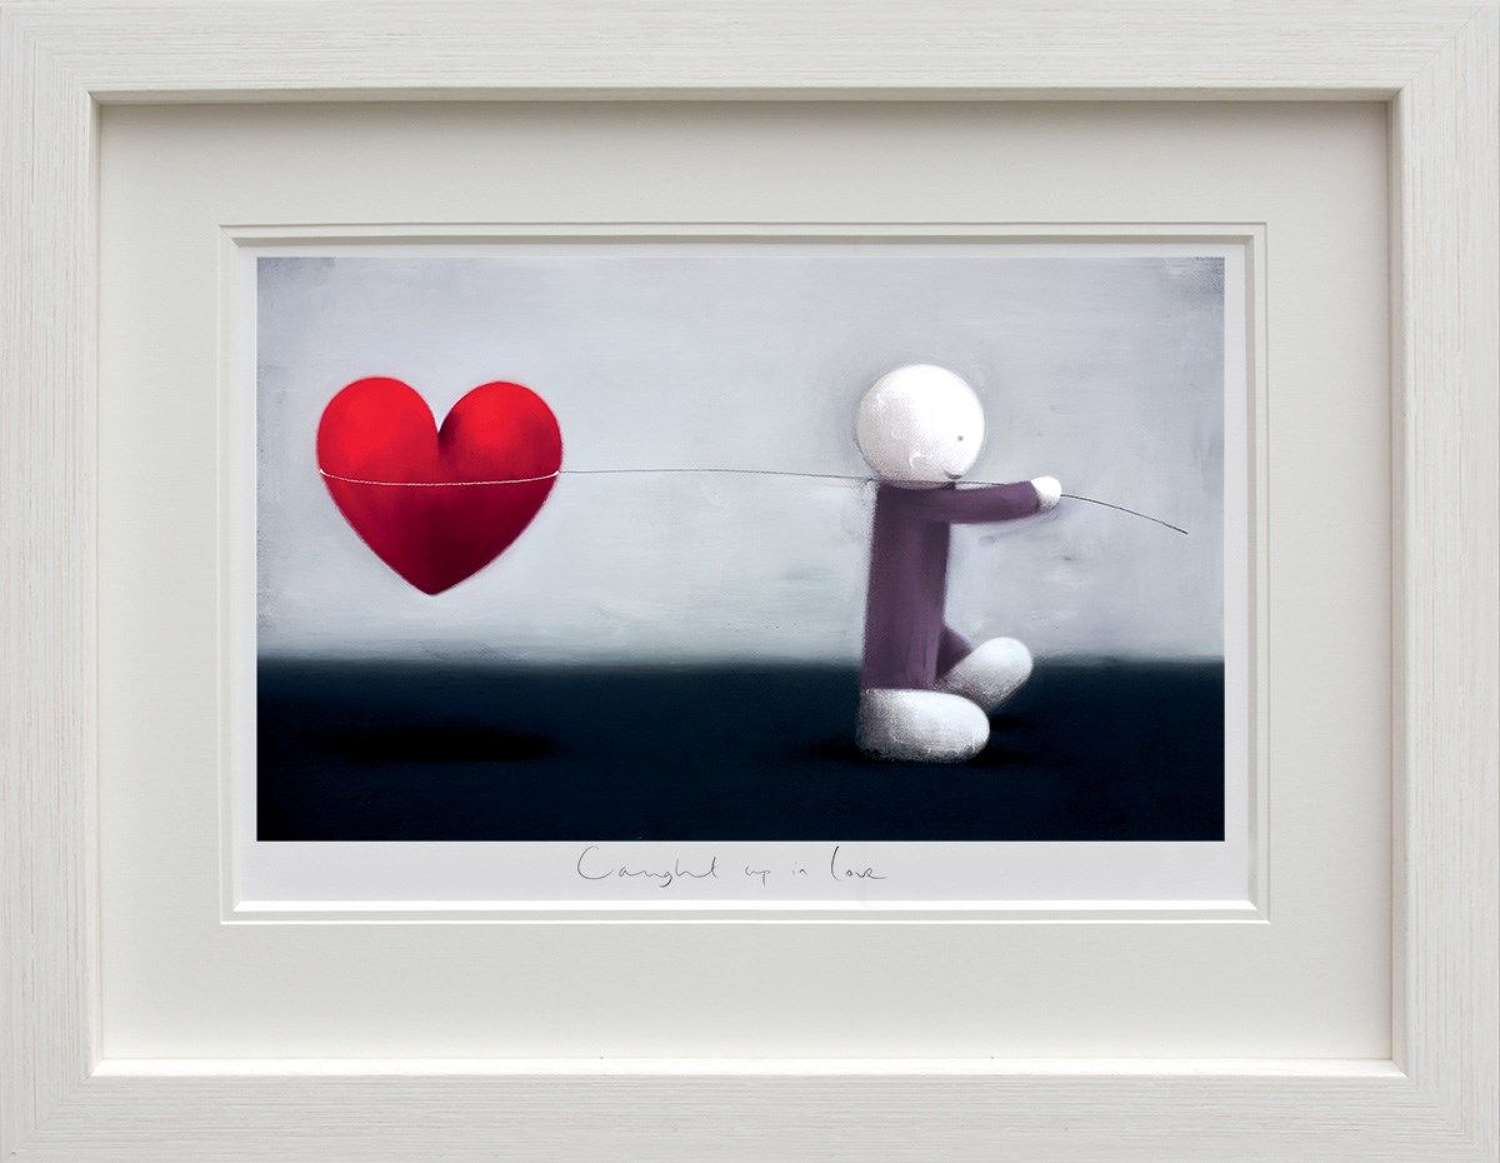 Caught Up In Love by Doug Hyde Framed Art Print